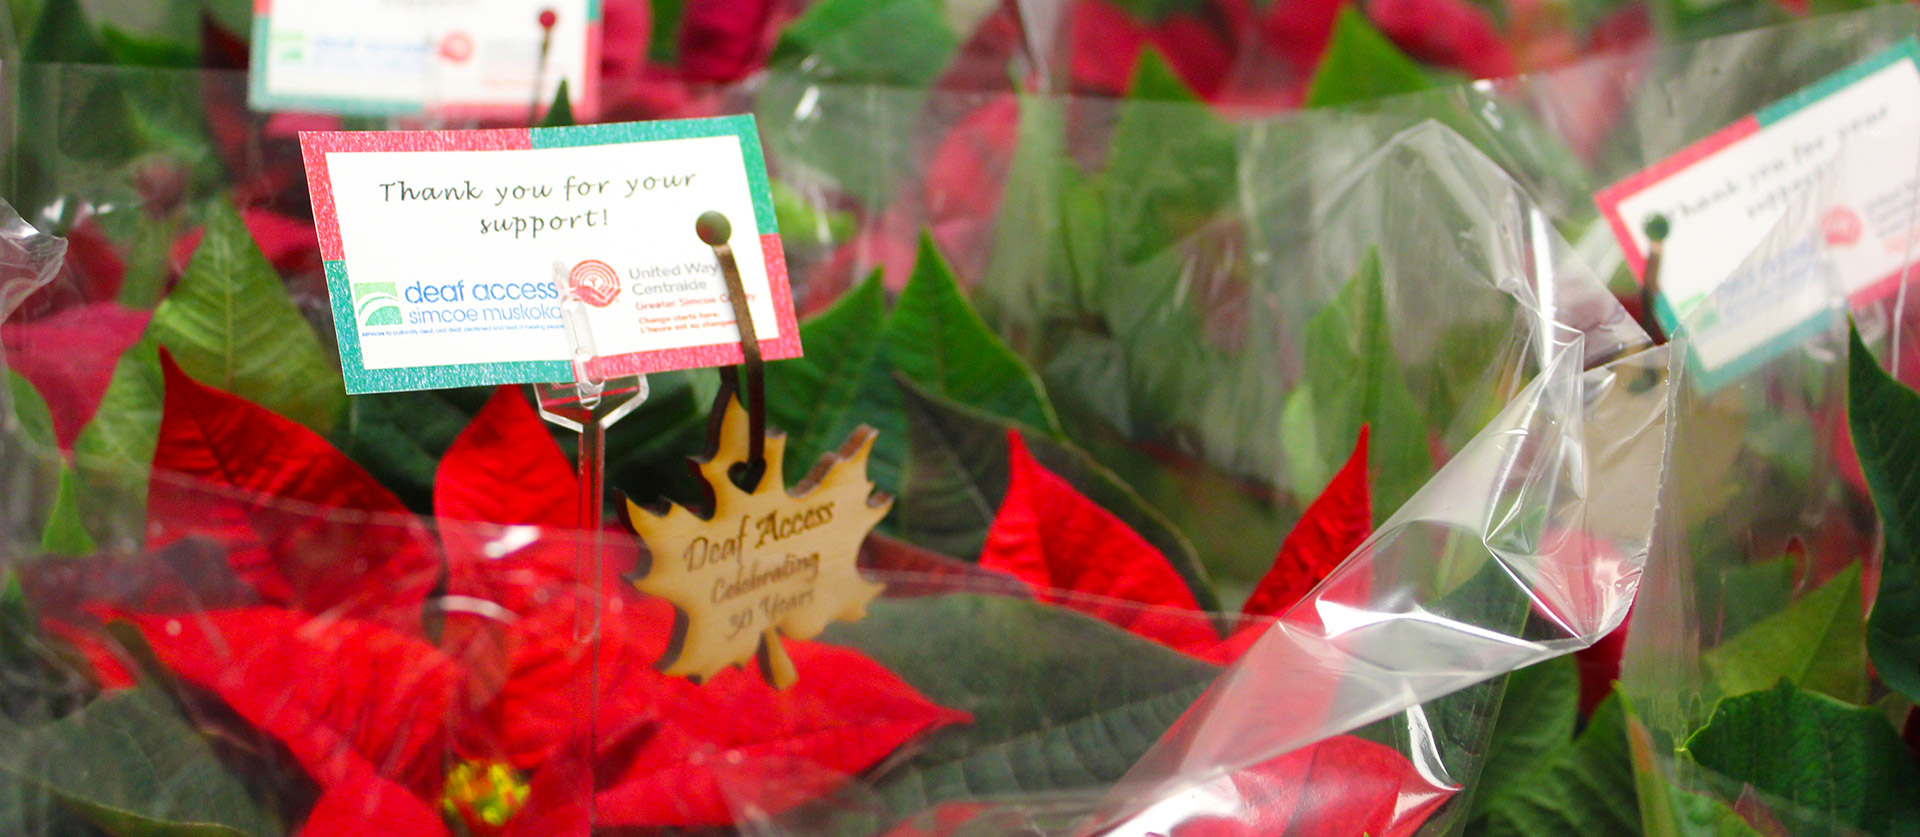 Poinsettias for the Holidays!